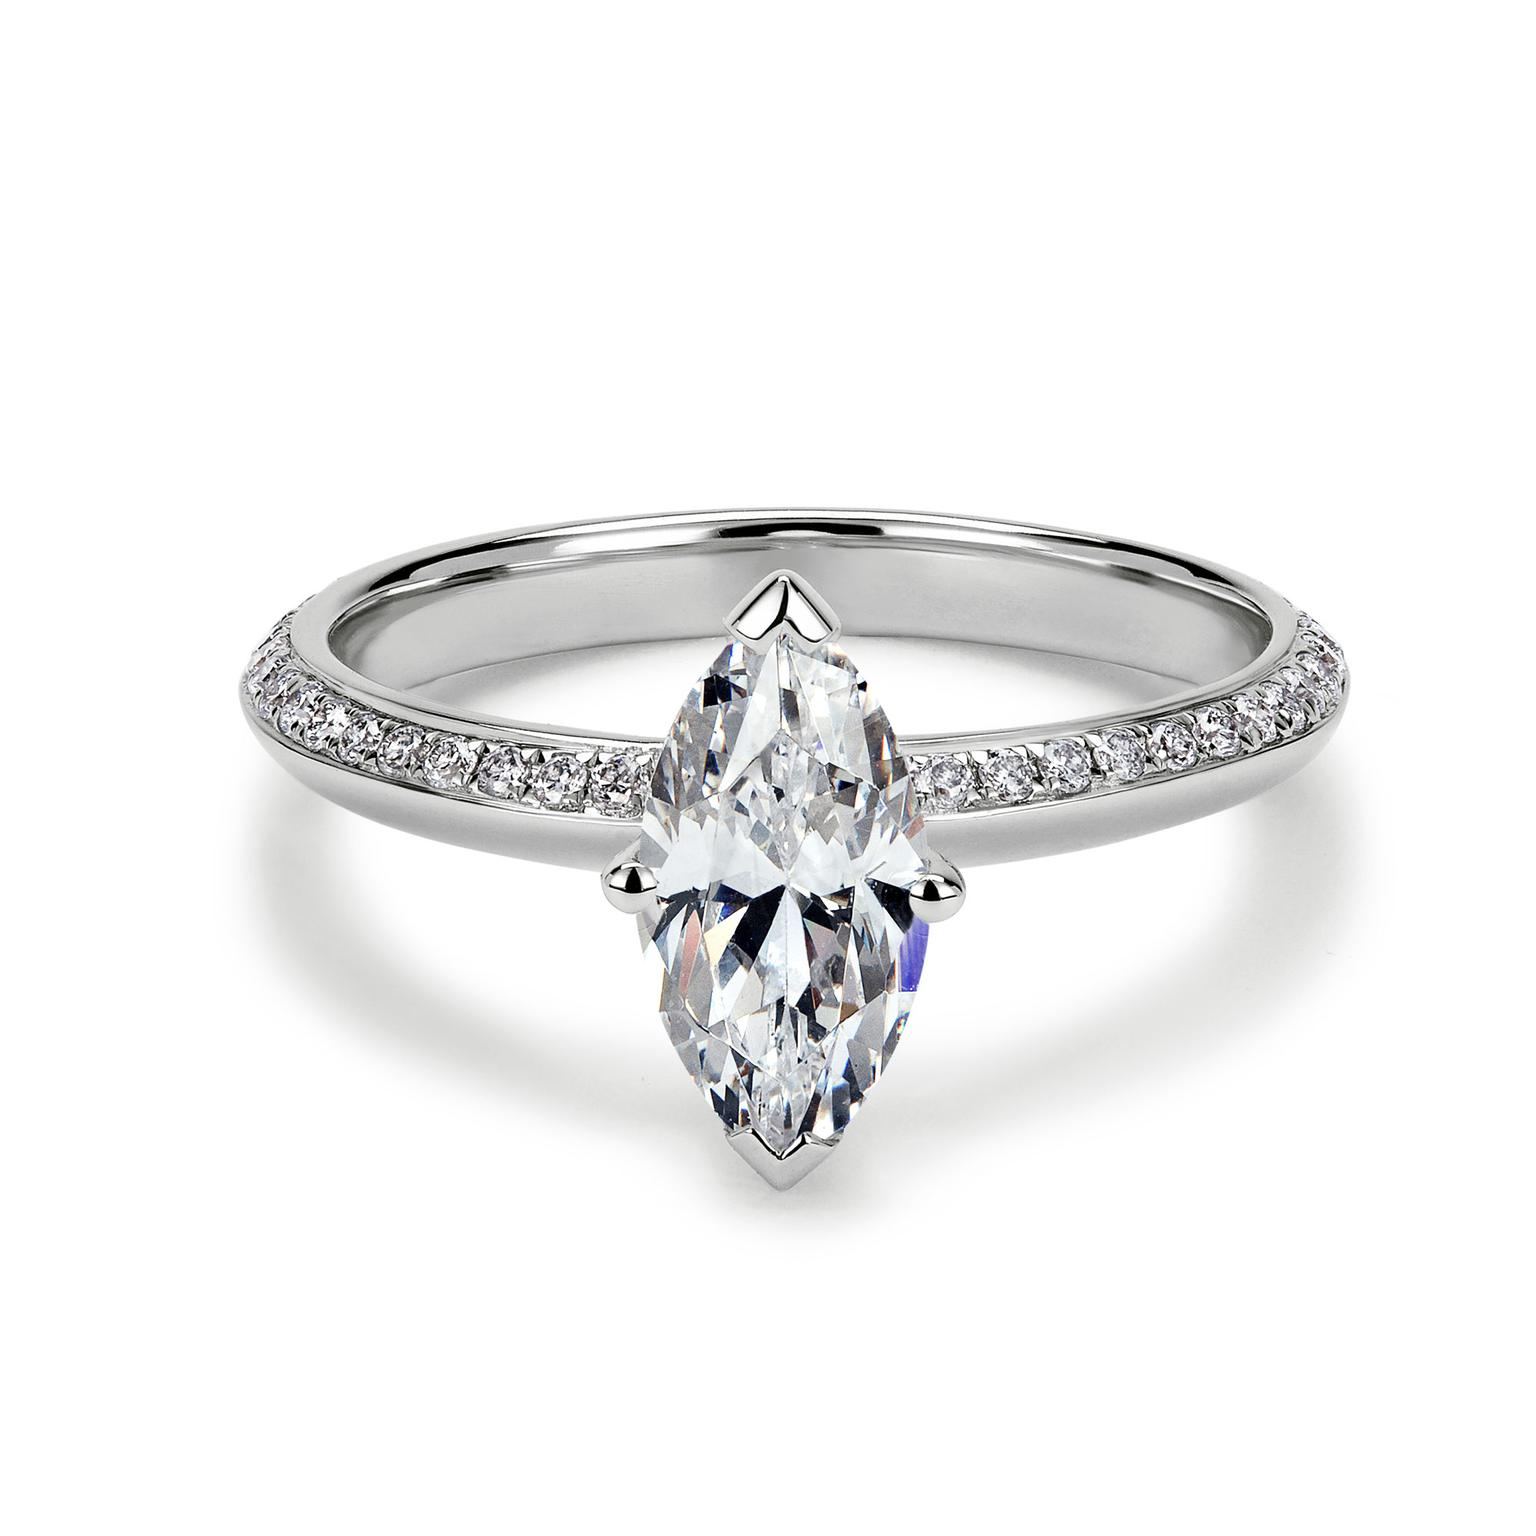 77 Diamonds Elixir white gold engagement ring set with a marquise-cut diamond